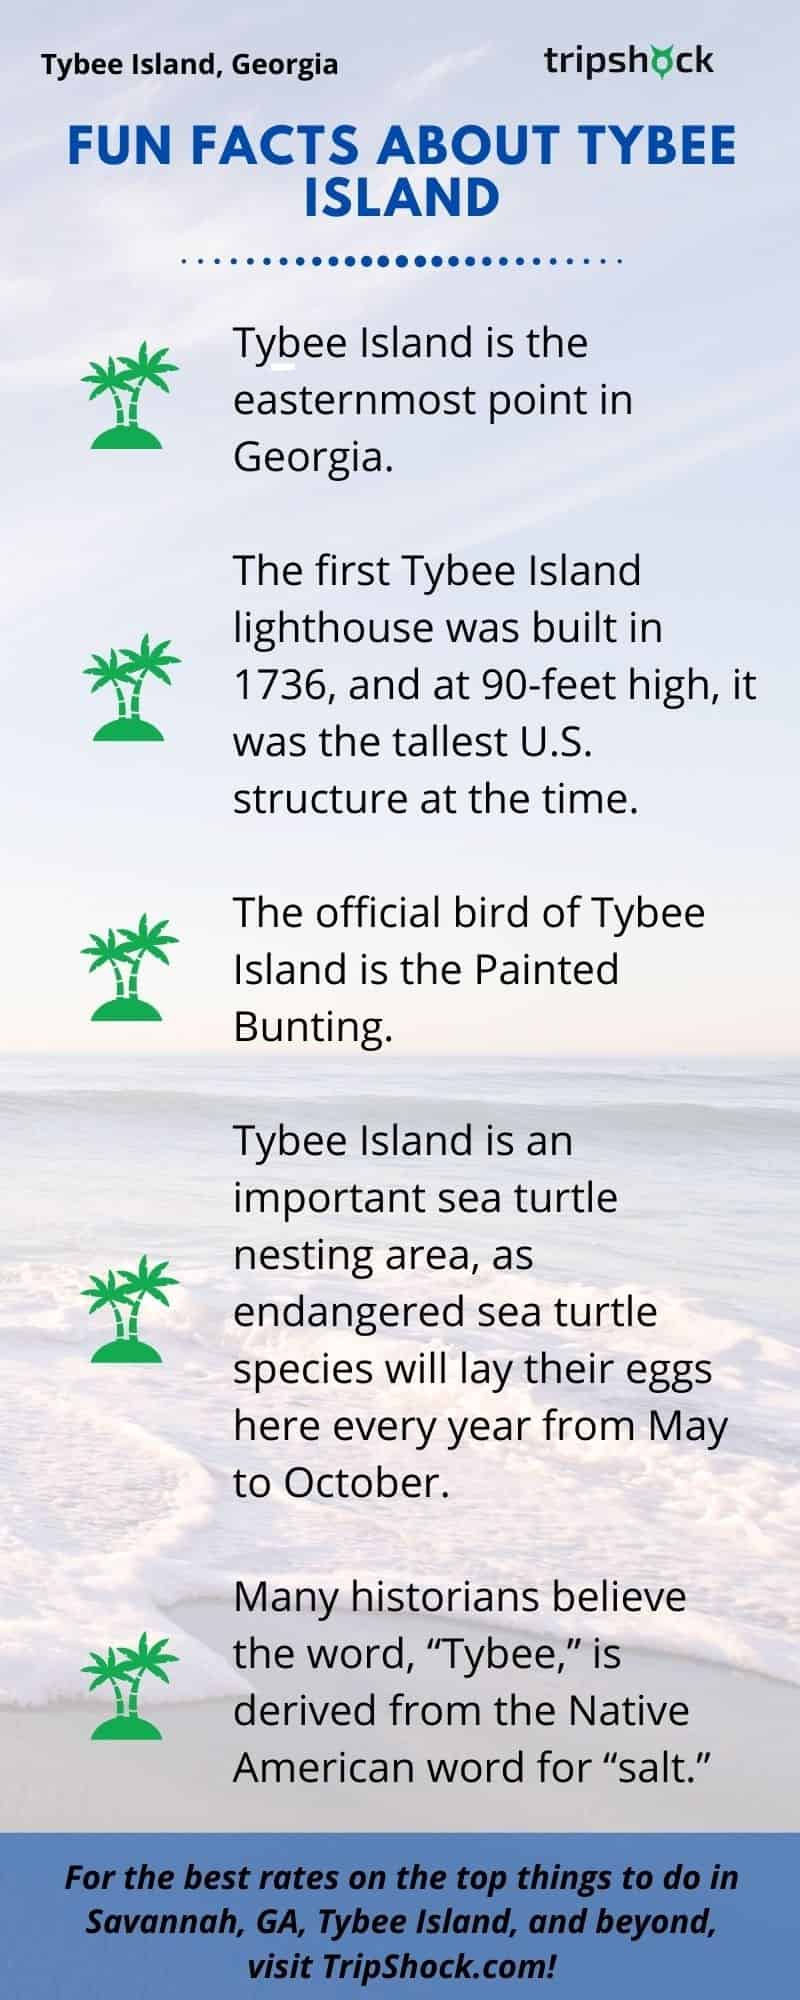 Fun Facts About Tybee Island